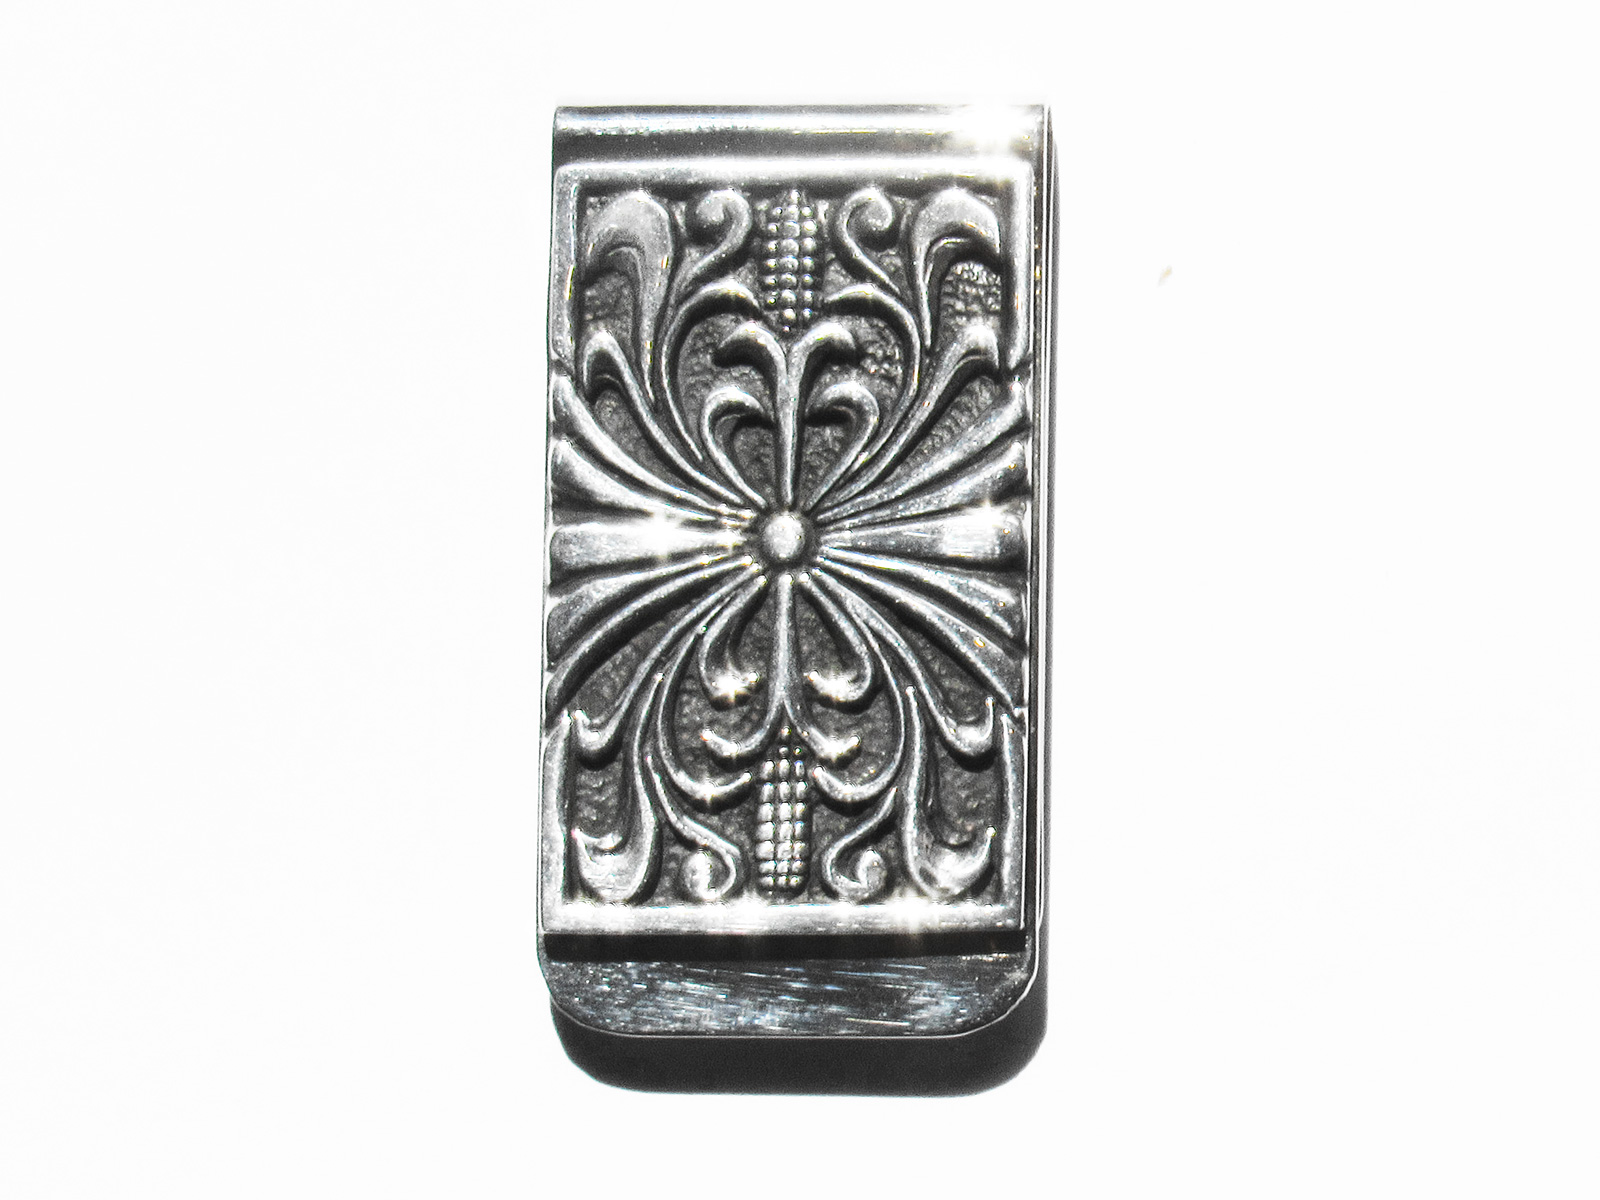 Etched Silver Money Clip